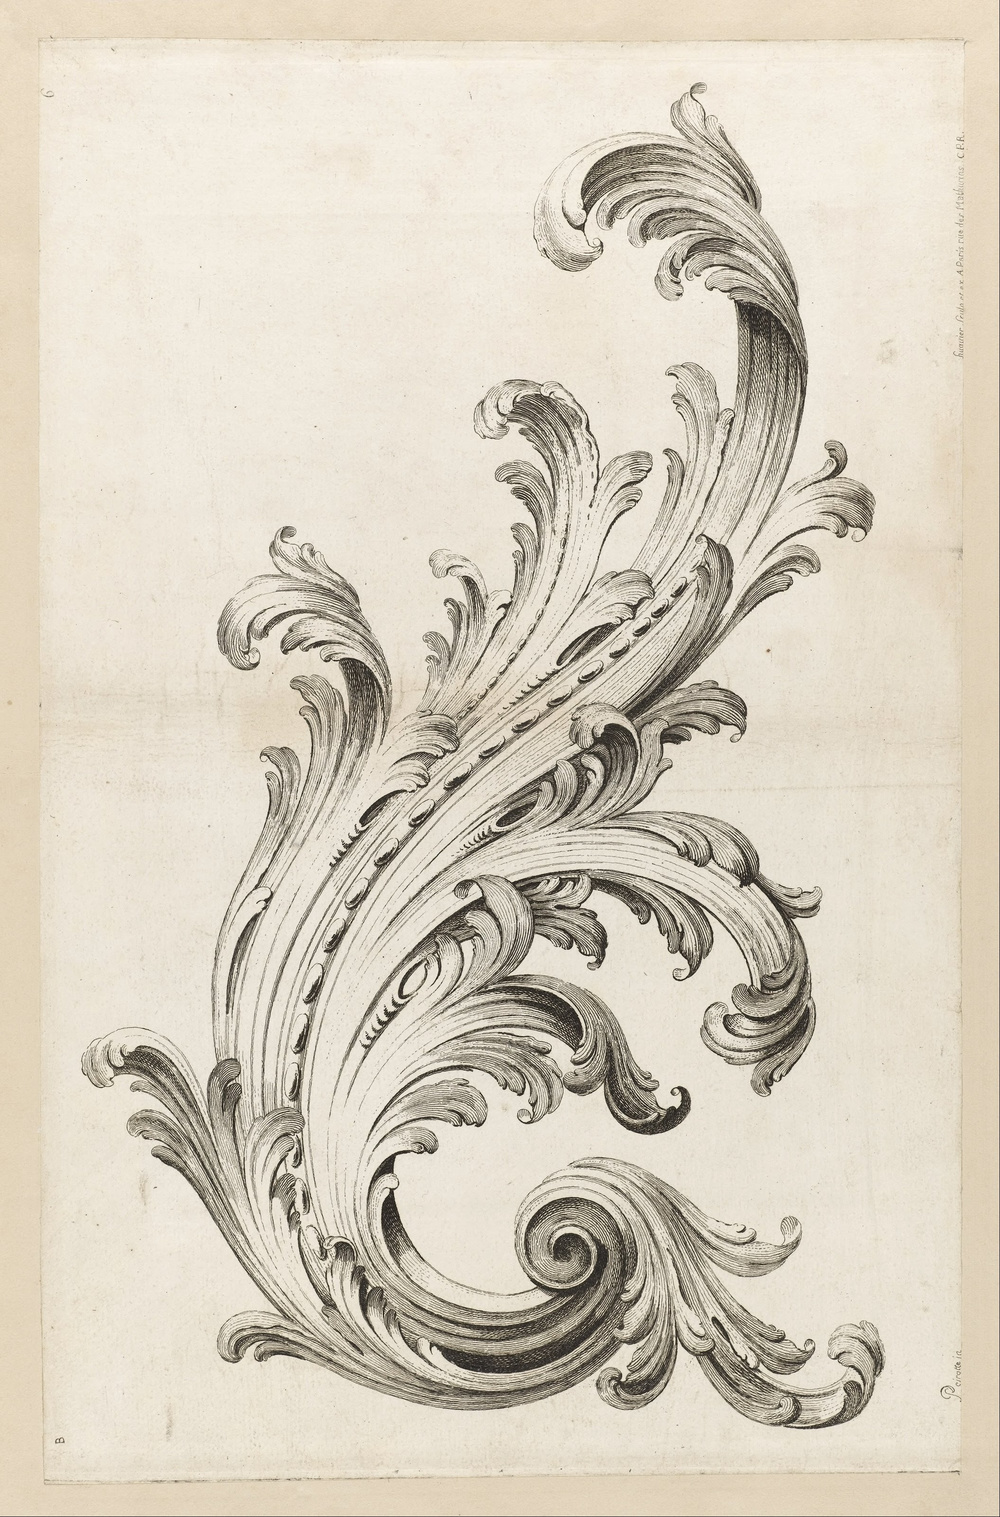 Alexis_Peyrotte_-_Acanthus_Leaf_Design_-_Google_Art_Project.jpg